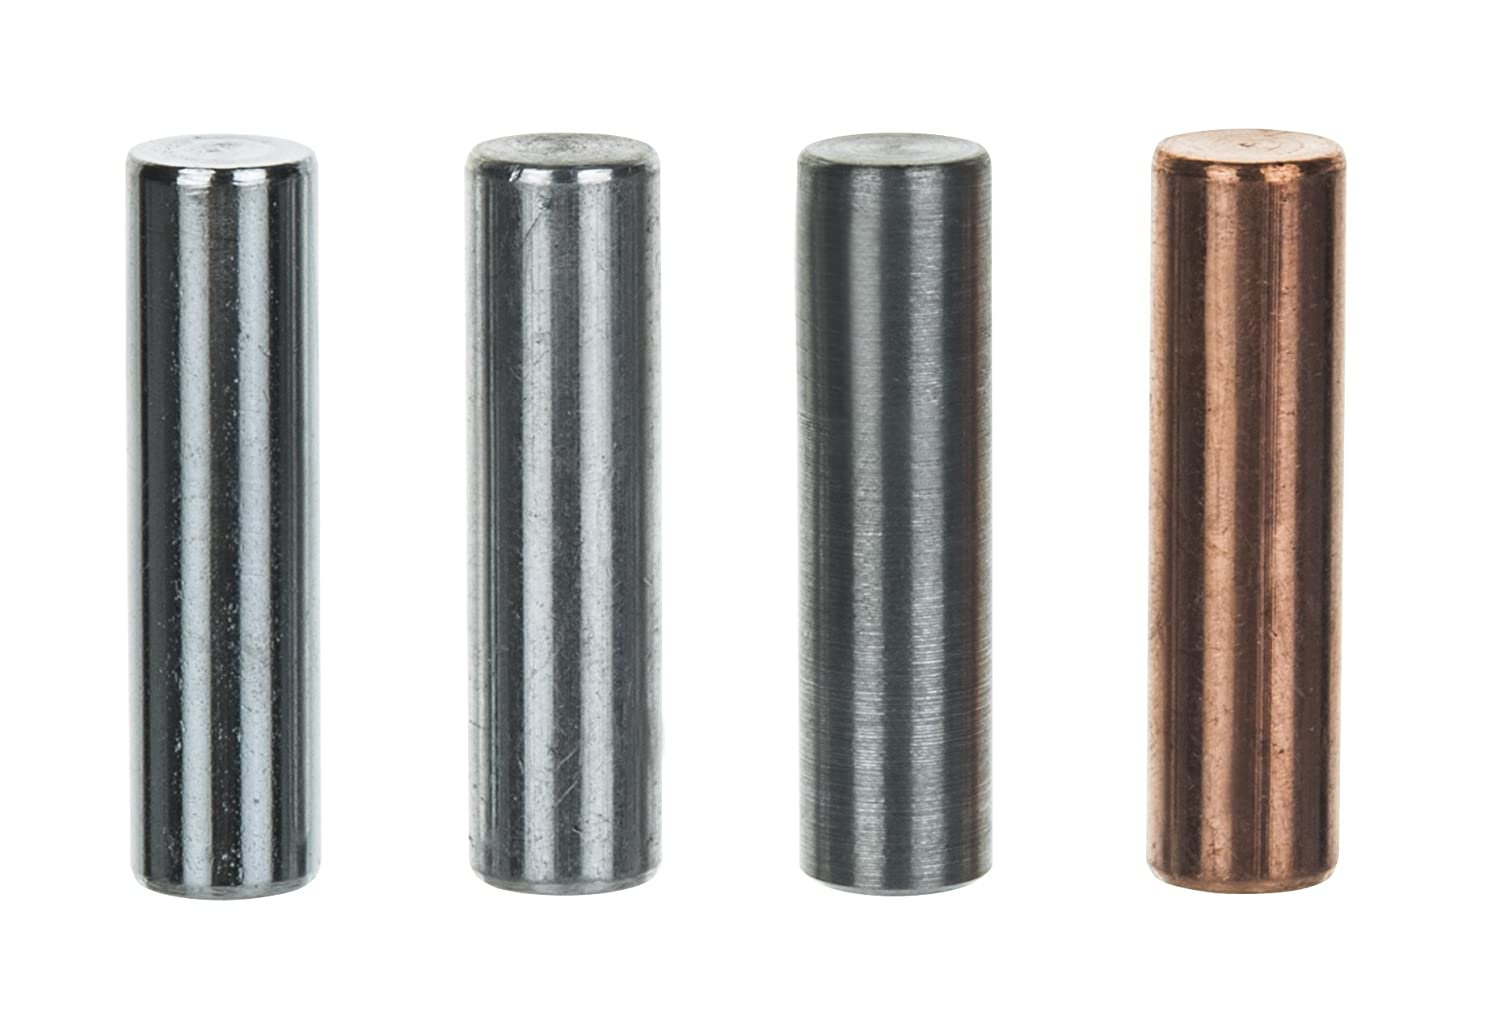 Eisco Labs Specific Gravity Metal Cylinder Set - Alum., Brass, Copper, and Steel